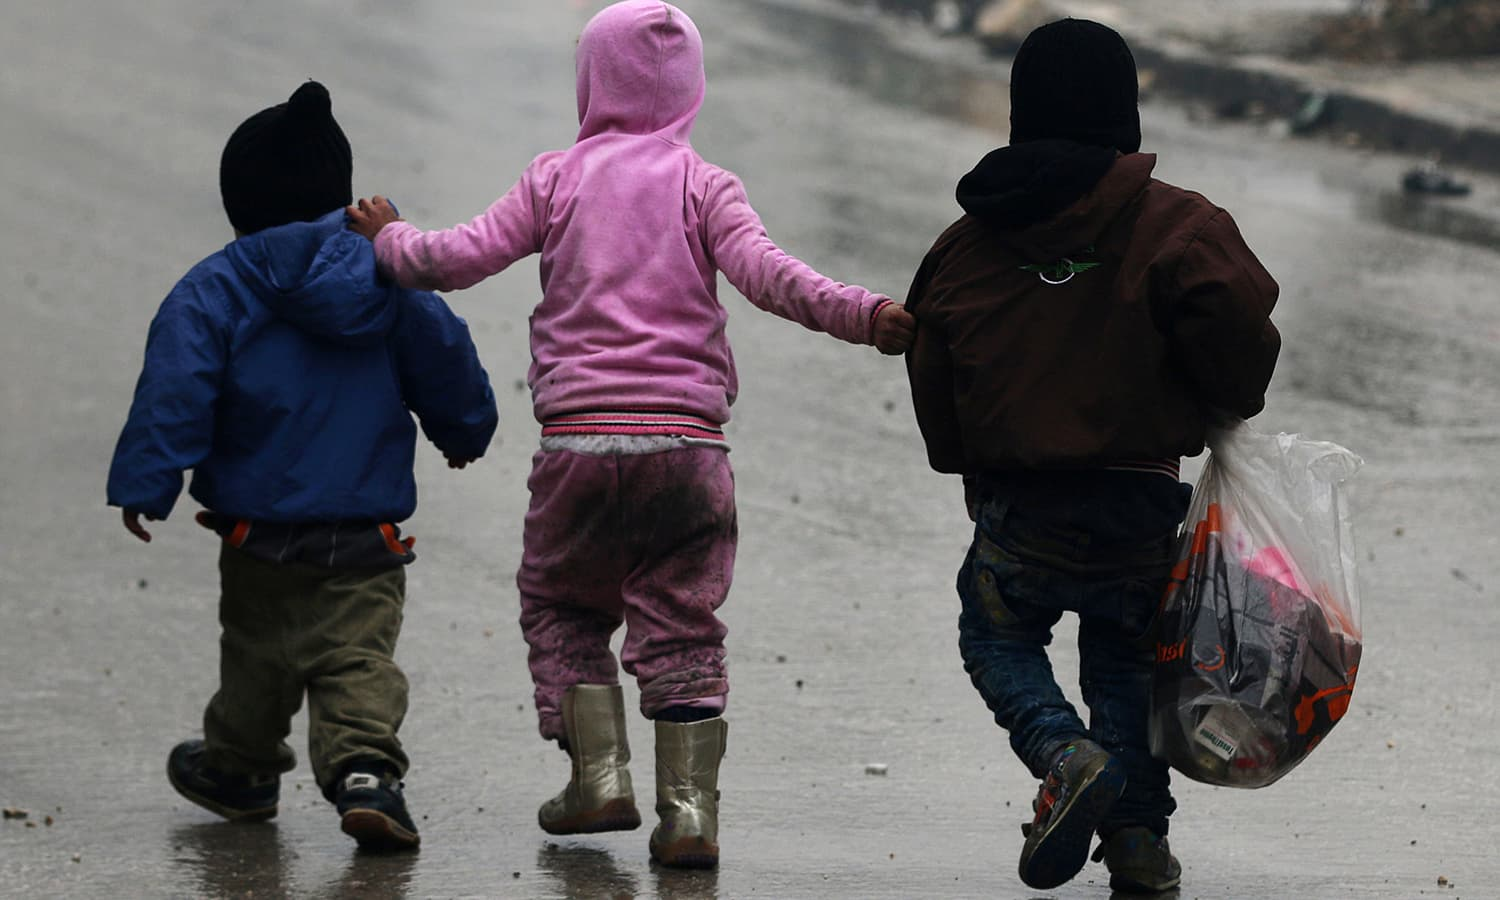 Children walk together as they flee deeper into the remaining rebel-held areas of Aleppo. ─Reuters